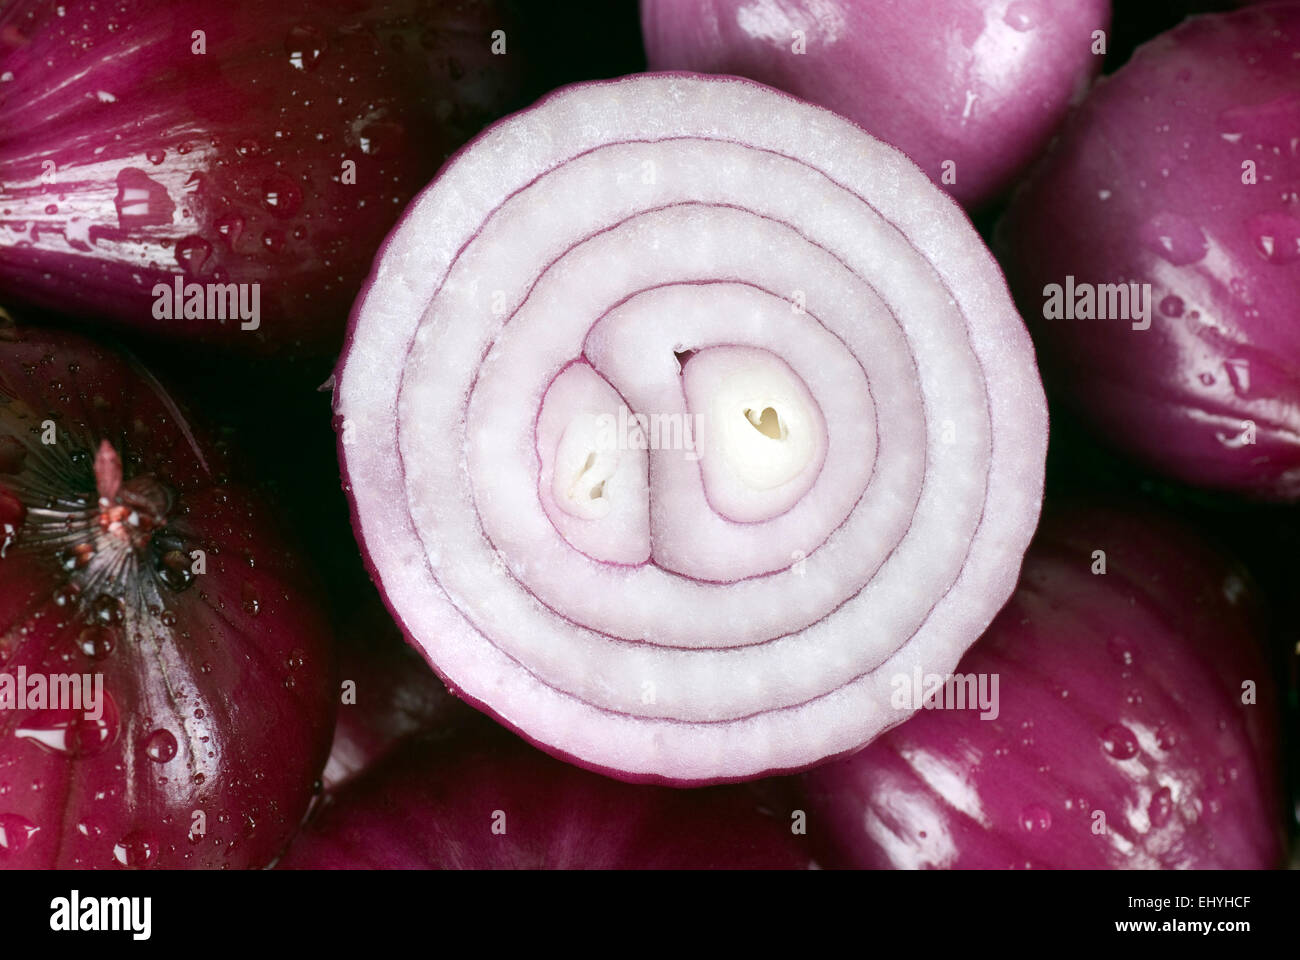 Red onion background close up full frame. - Stock Image